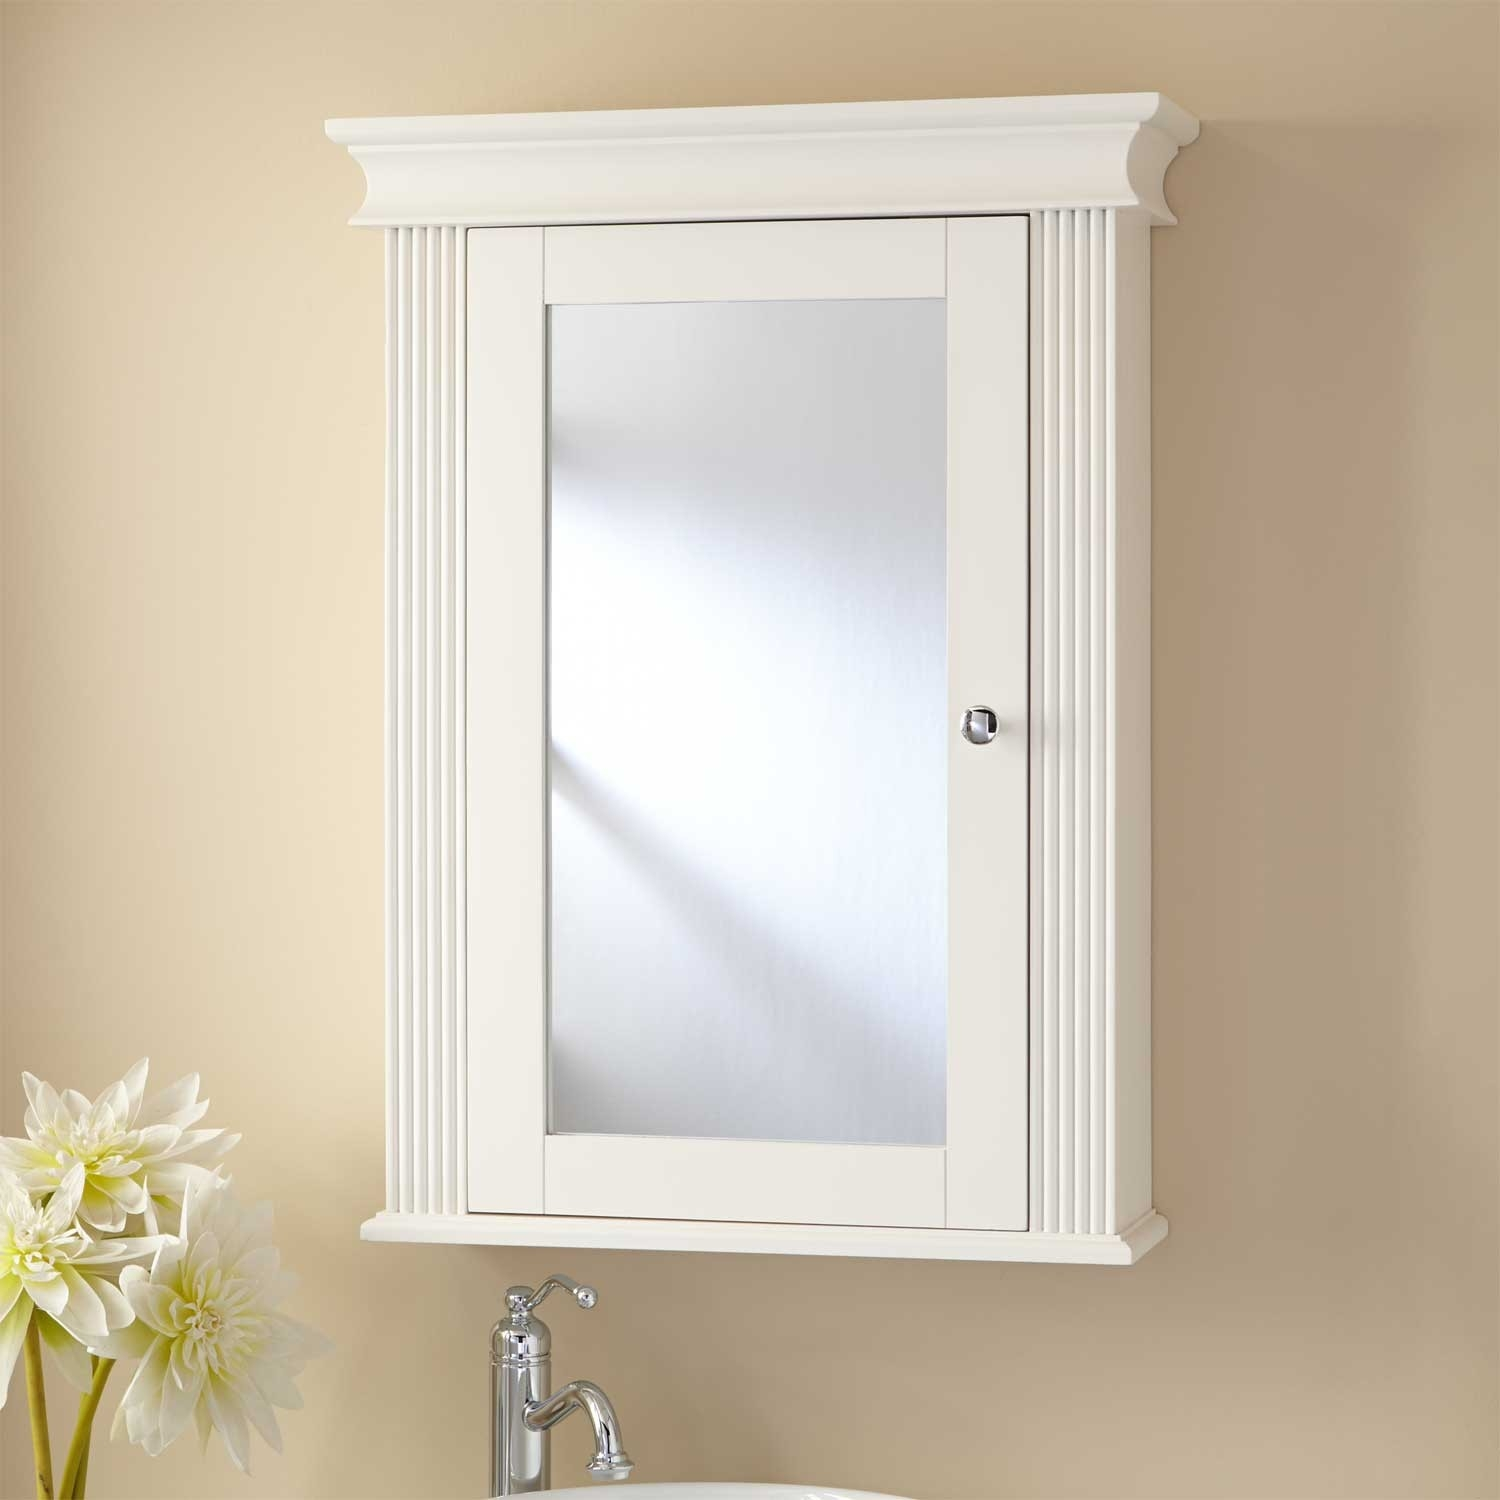 White Colonial Wall Mounted Bathroom Mirrored Cabinet